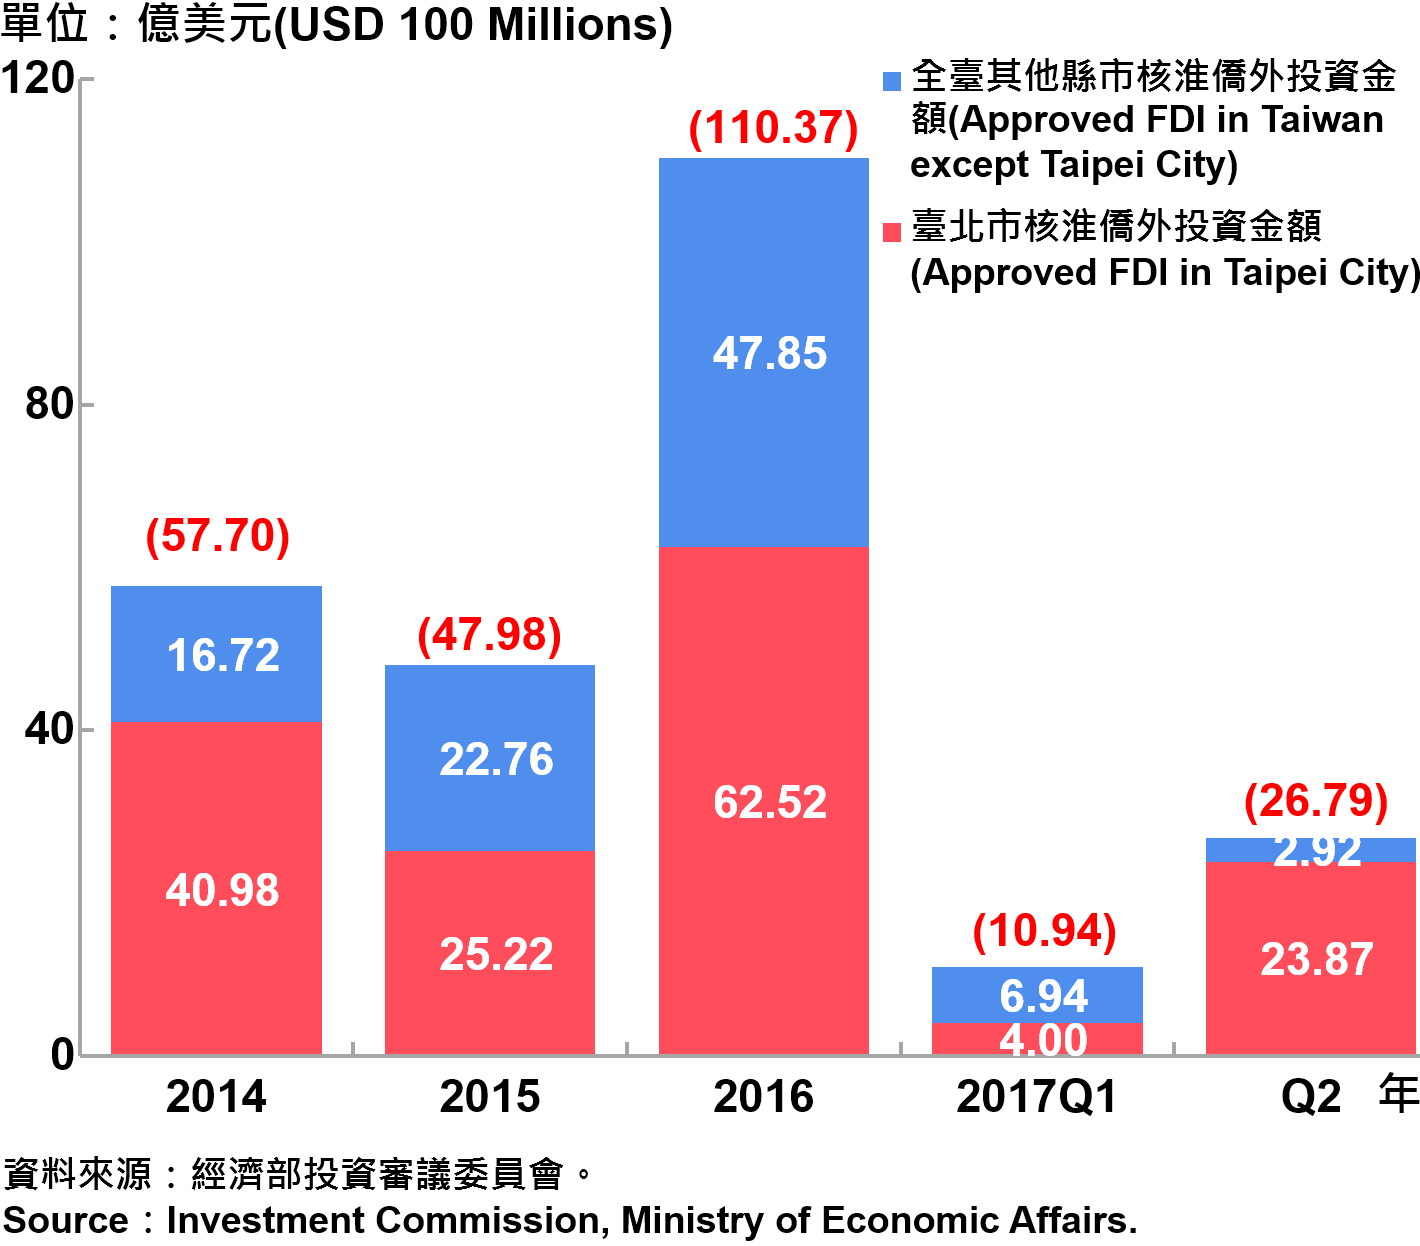 圖13、臺北市與全國僑外投資金額—2017Q2 Foreign Direct Investment (FDI) in Taipei City and Taiwan—2017Q2